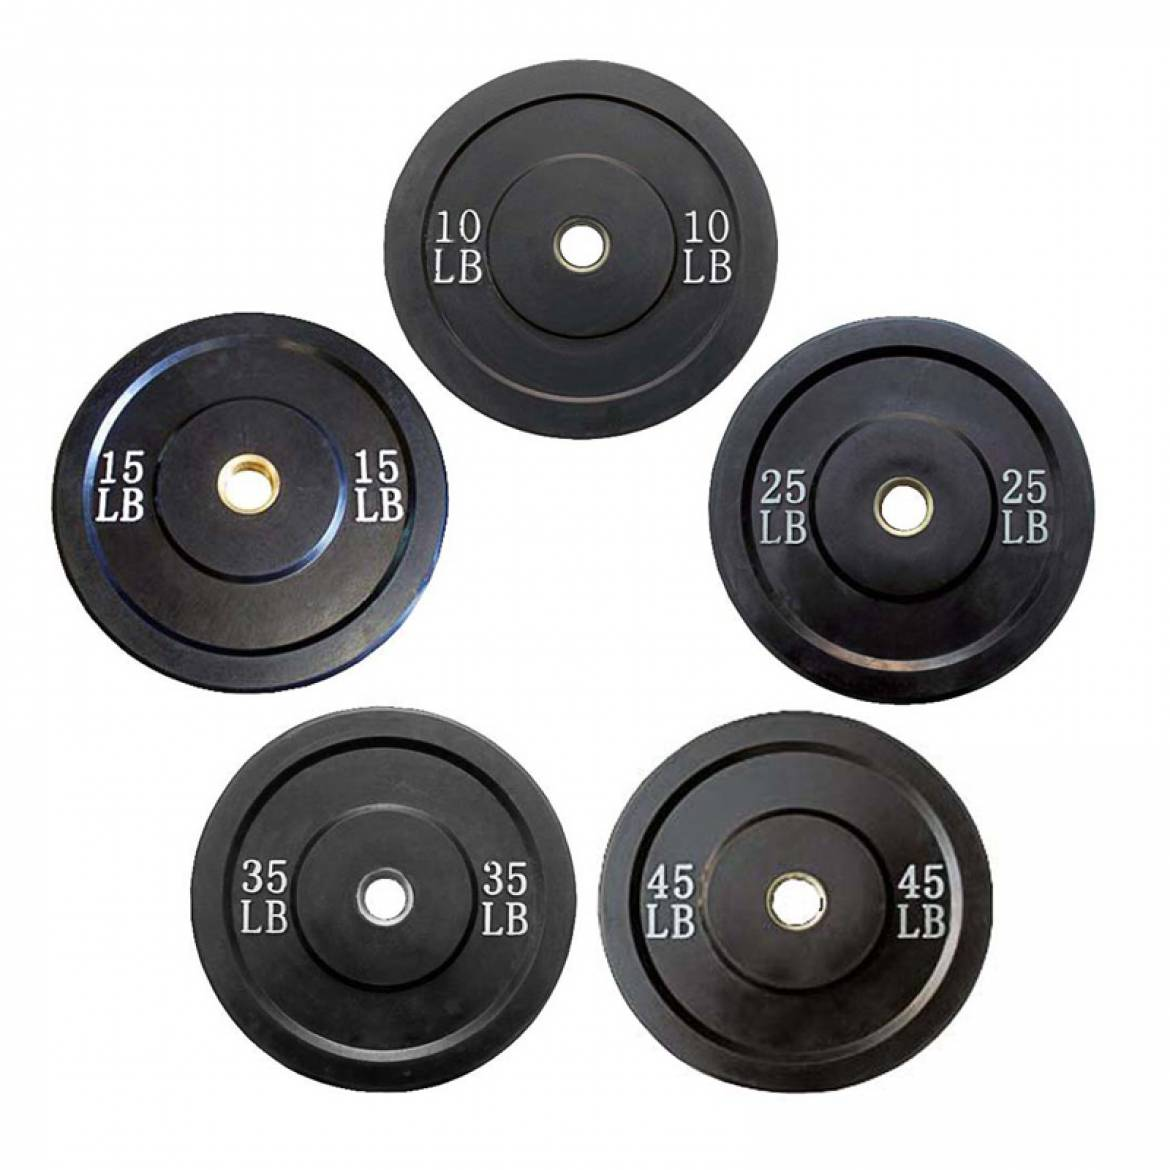 2″ Black Rubber Bumper Plates (No Logo)